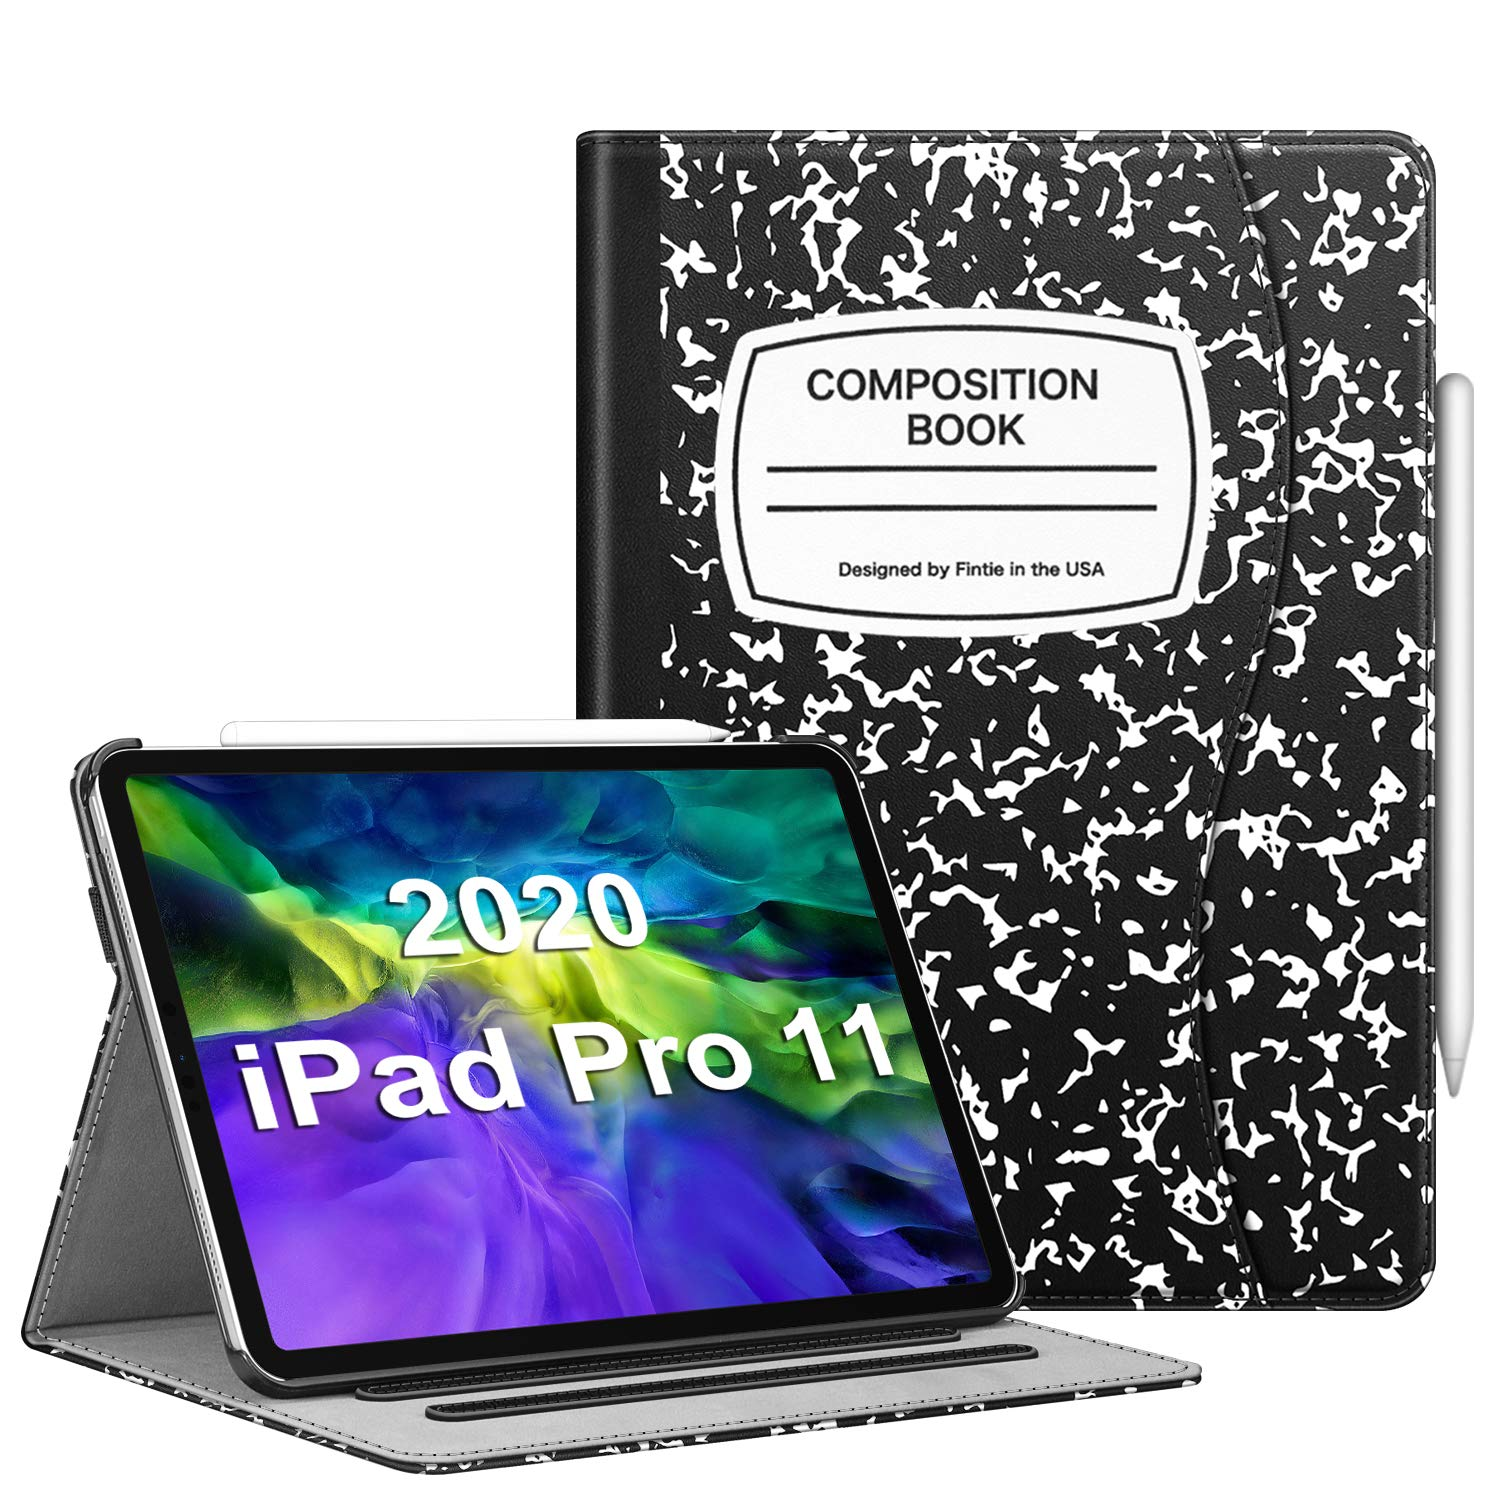 """CaseBot Case for iPad Pro 11"""" 2020/2018 with Pencil Holder, Multi-Angle Viewing Folio Smart Stand Cover with Pocket [Supports Pencil 2nd Gen Charging], Auto Sleep/Wake, Composition Book"""